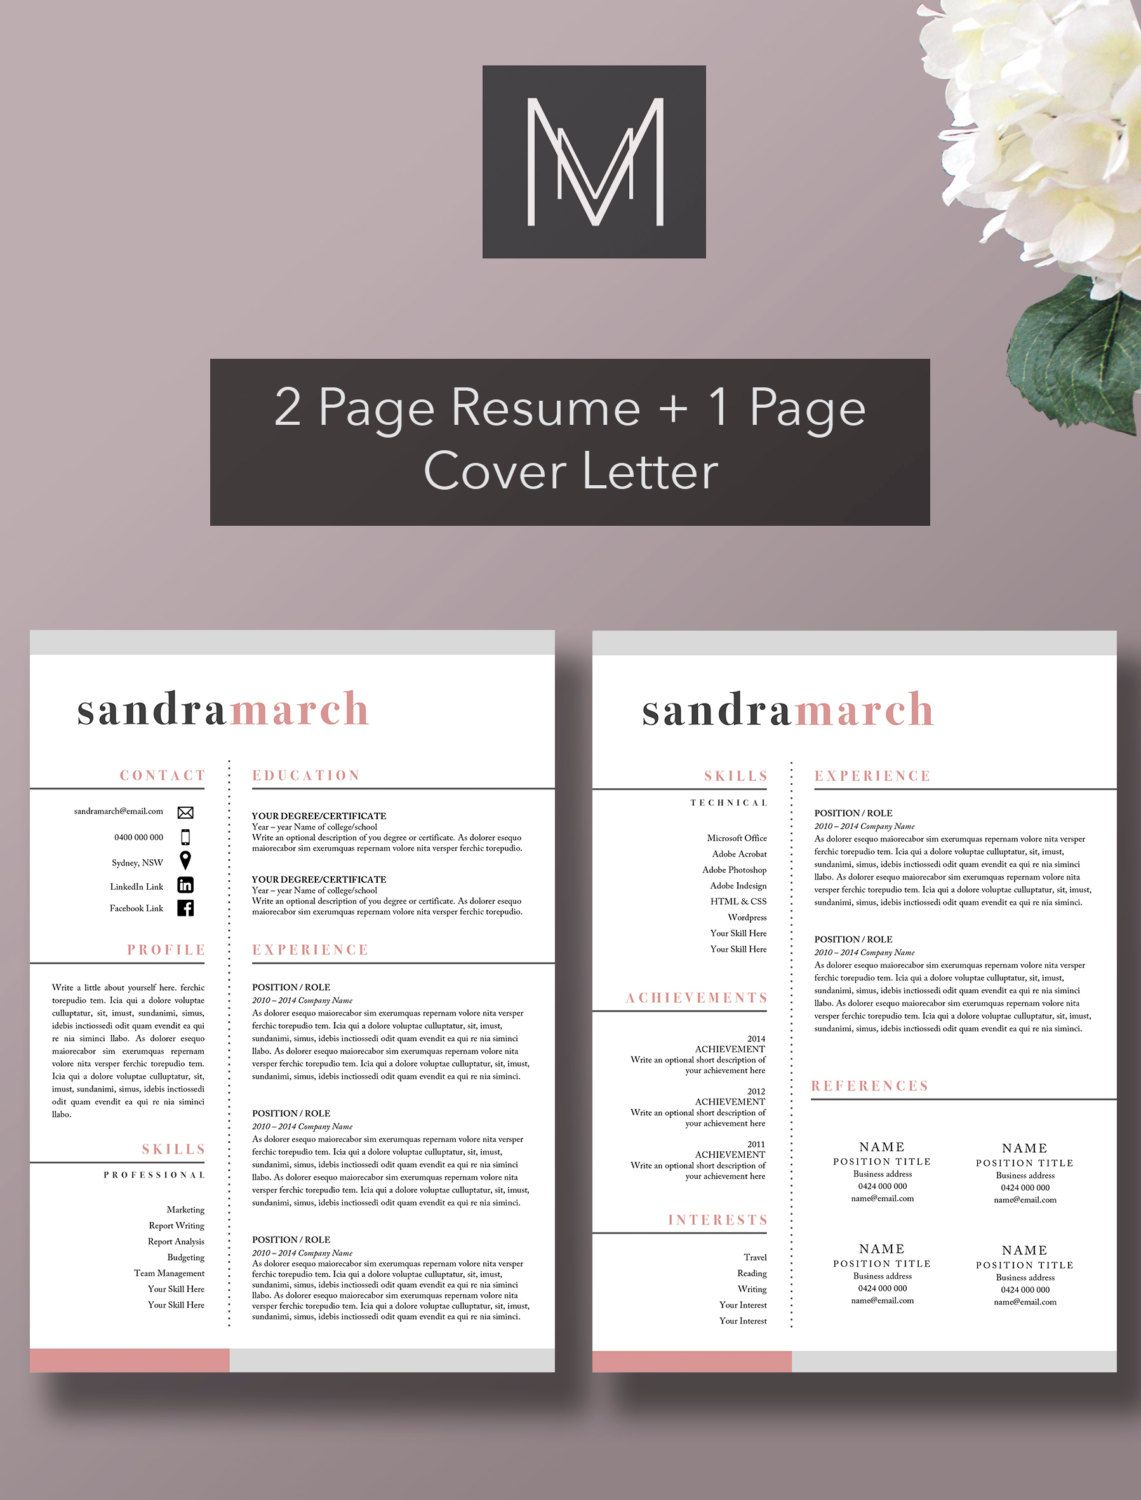 Professional Resume Template   Page Resume   Page Cover Letter